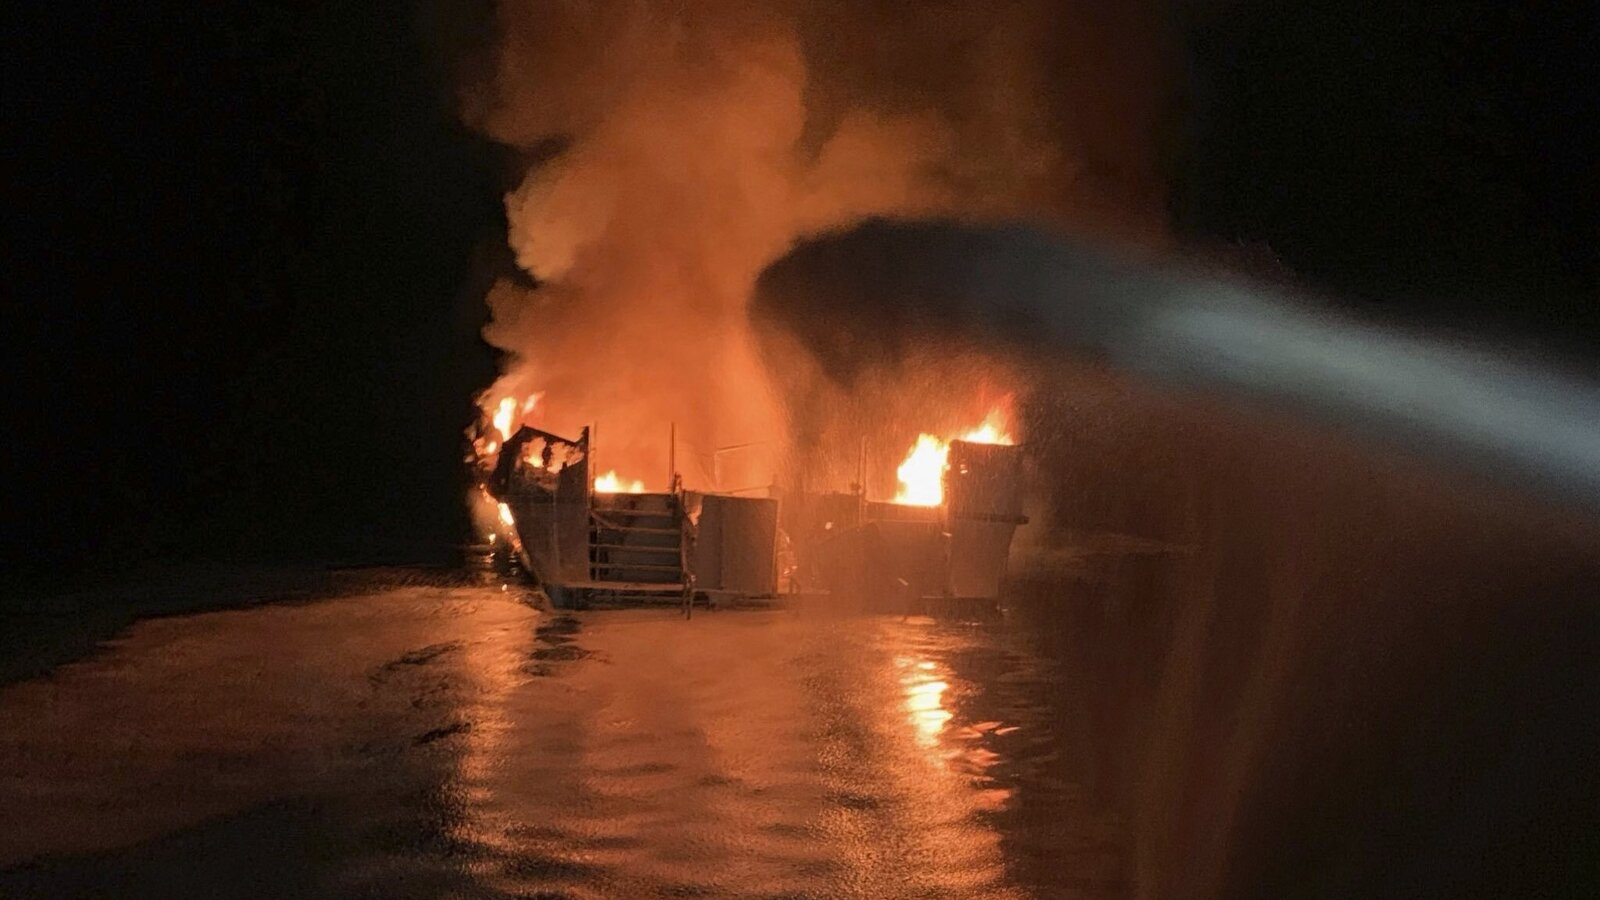 25 bodies found, 9 still missing after California boat fire